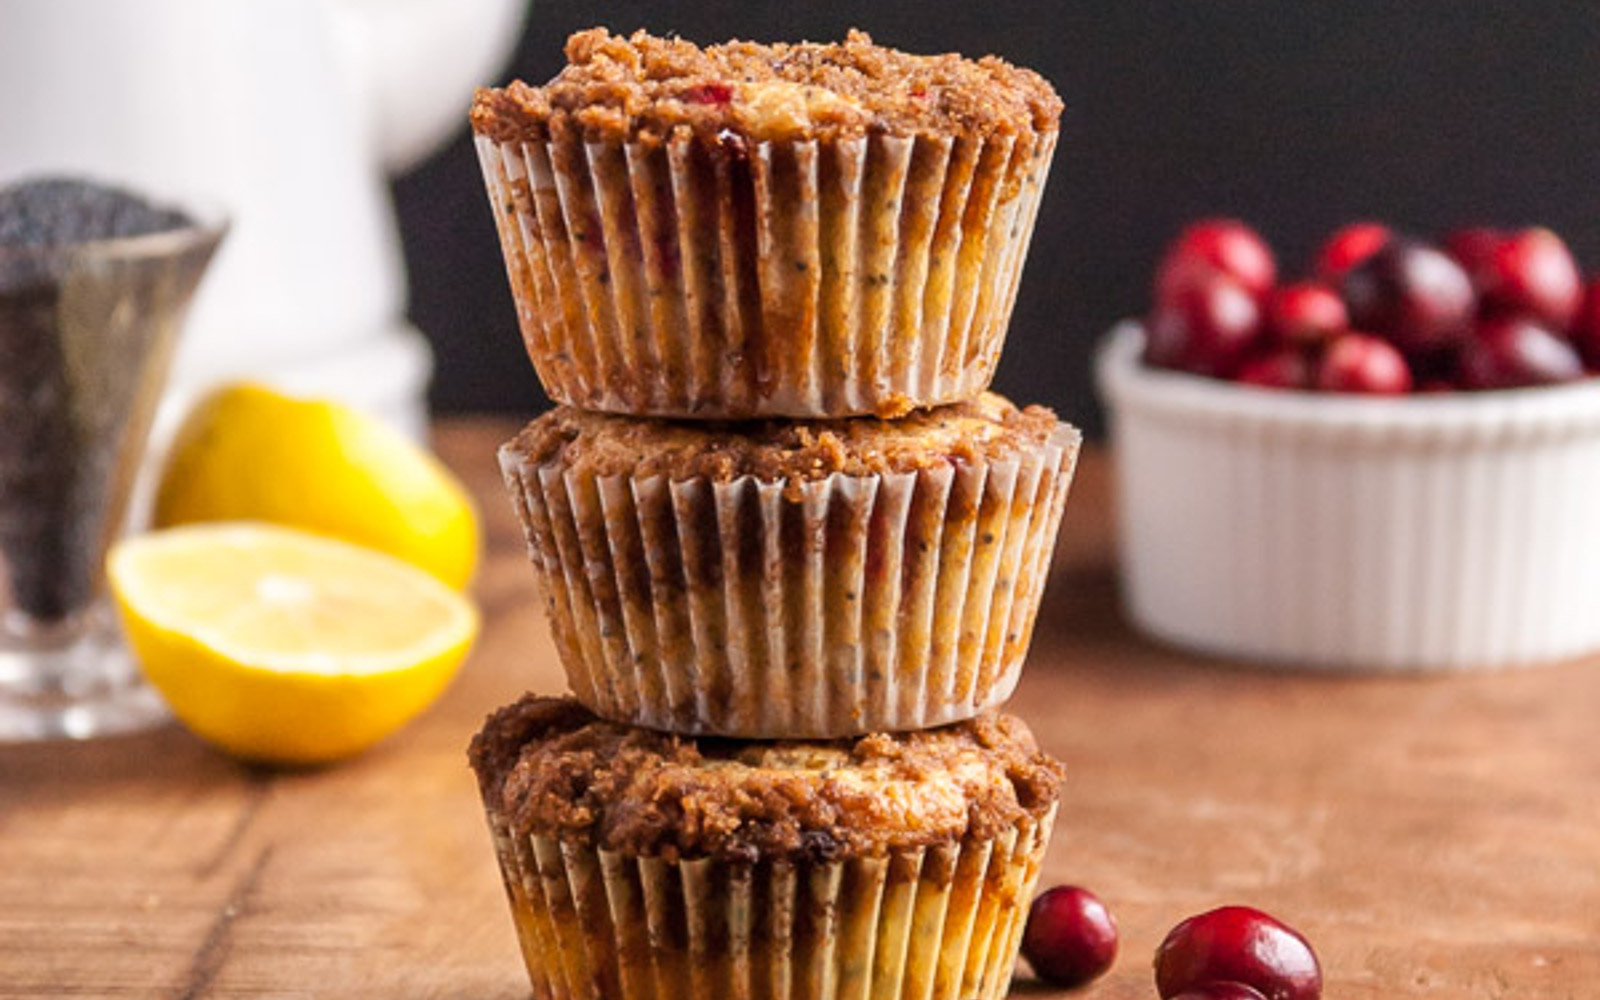 Cranberry Lemon Poppy Seed Muffins